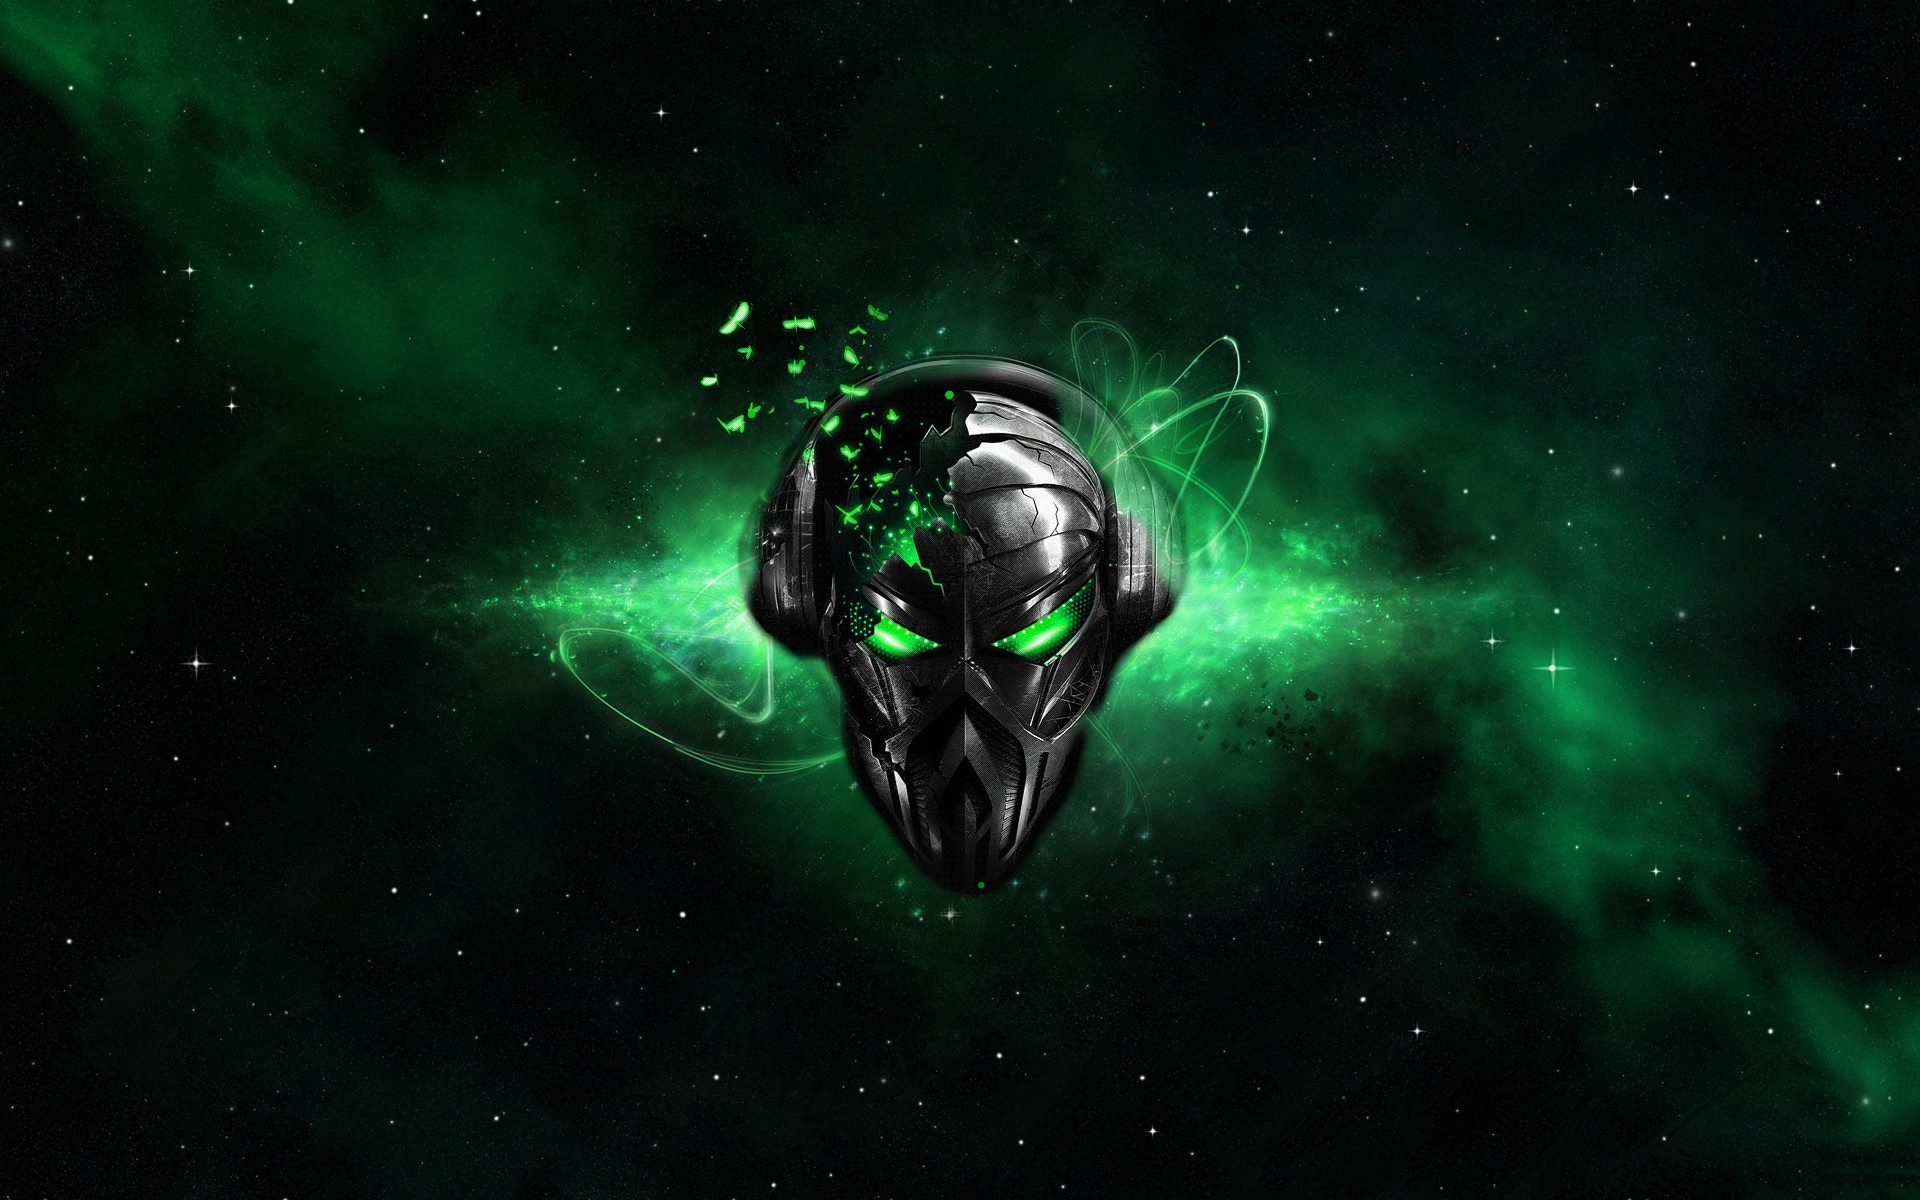 Alienware Desktop Background Alien Head Green Destruction Destroyed ...